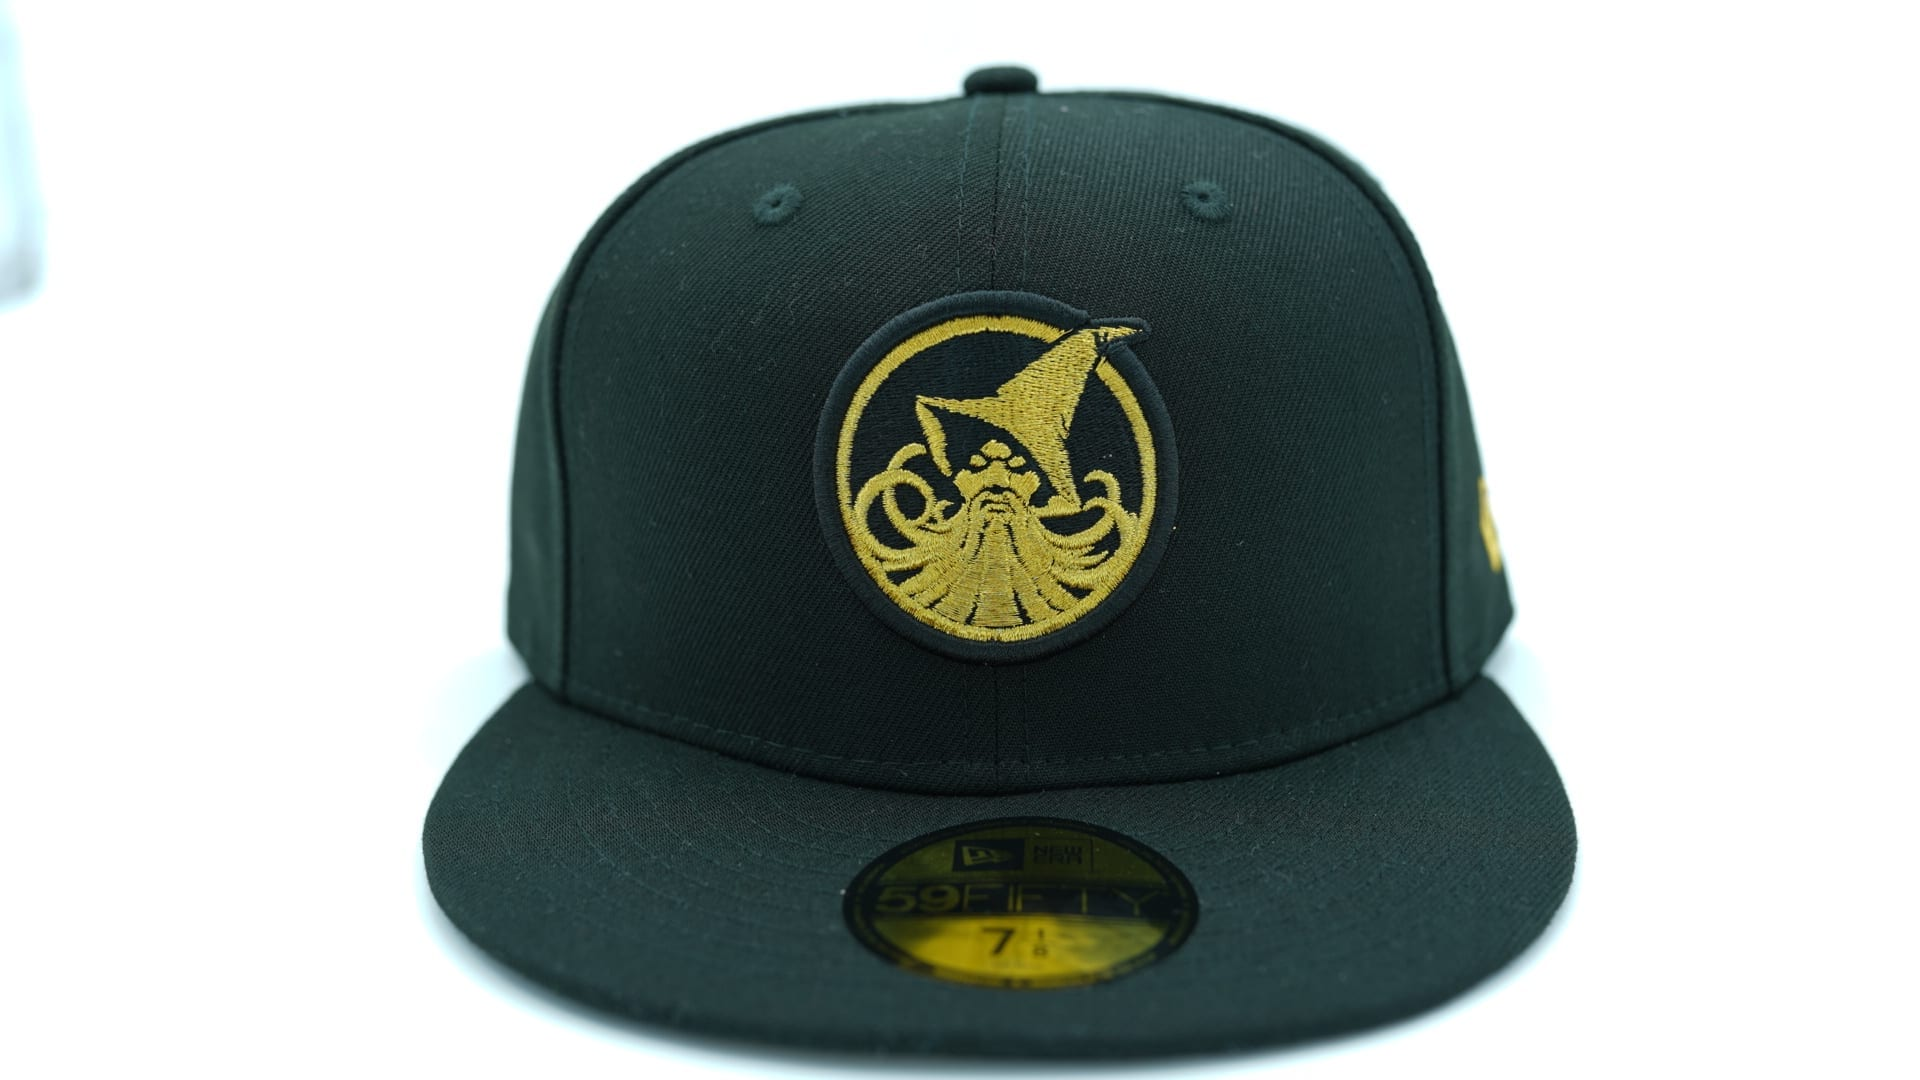 Golden State Warriors Memory Foam High Crown Fitted Cap